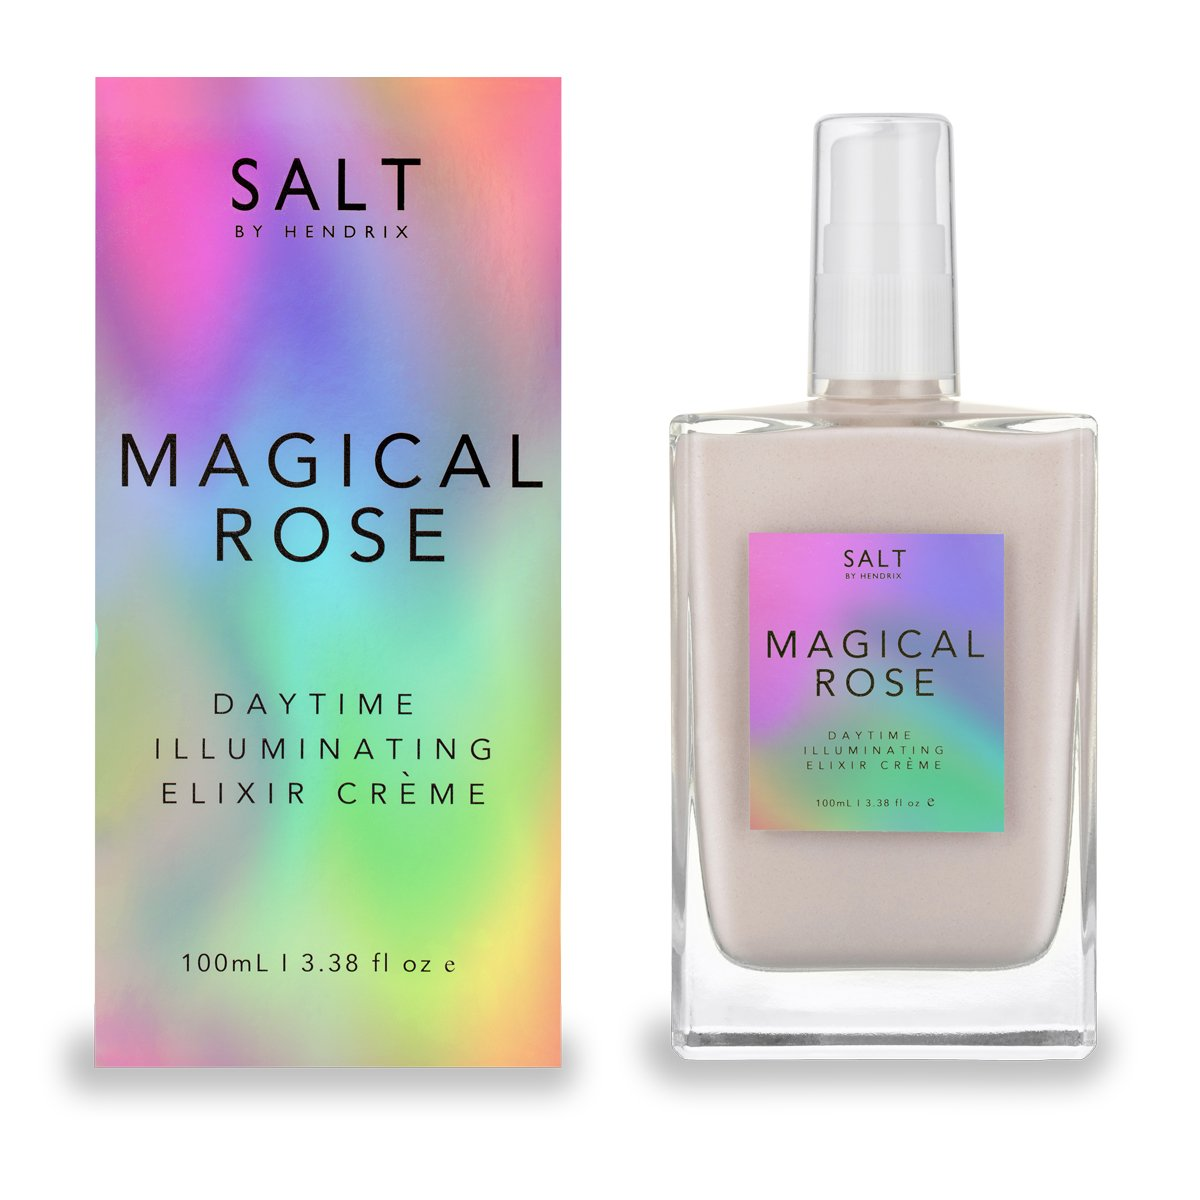 Salt magical rose cremé